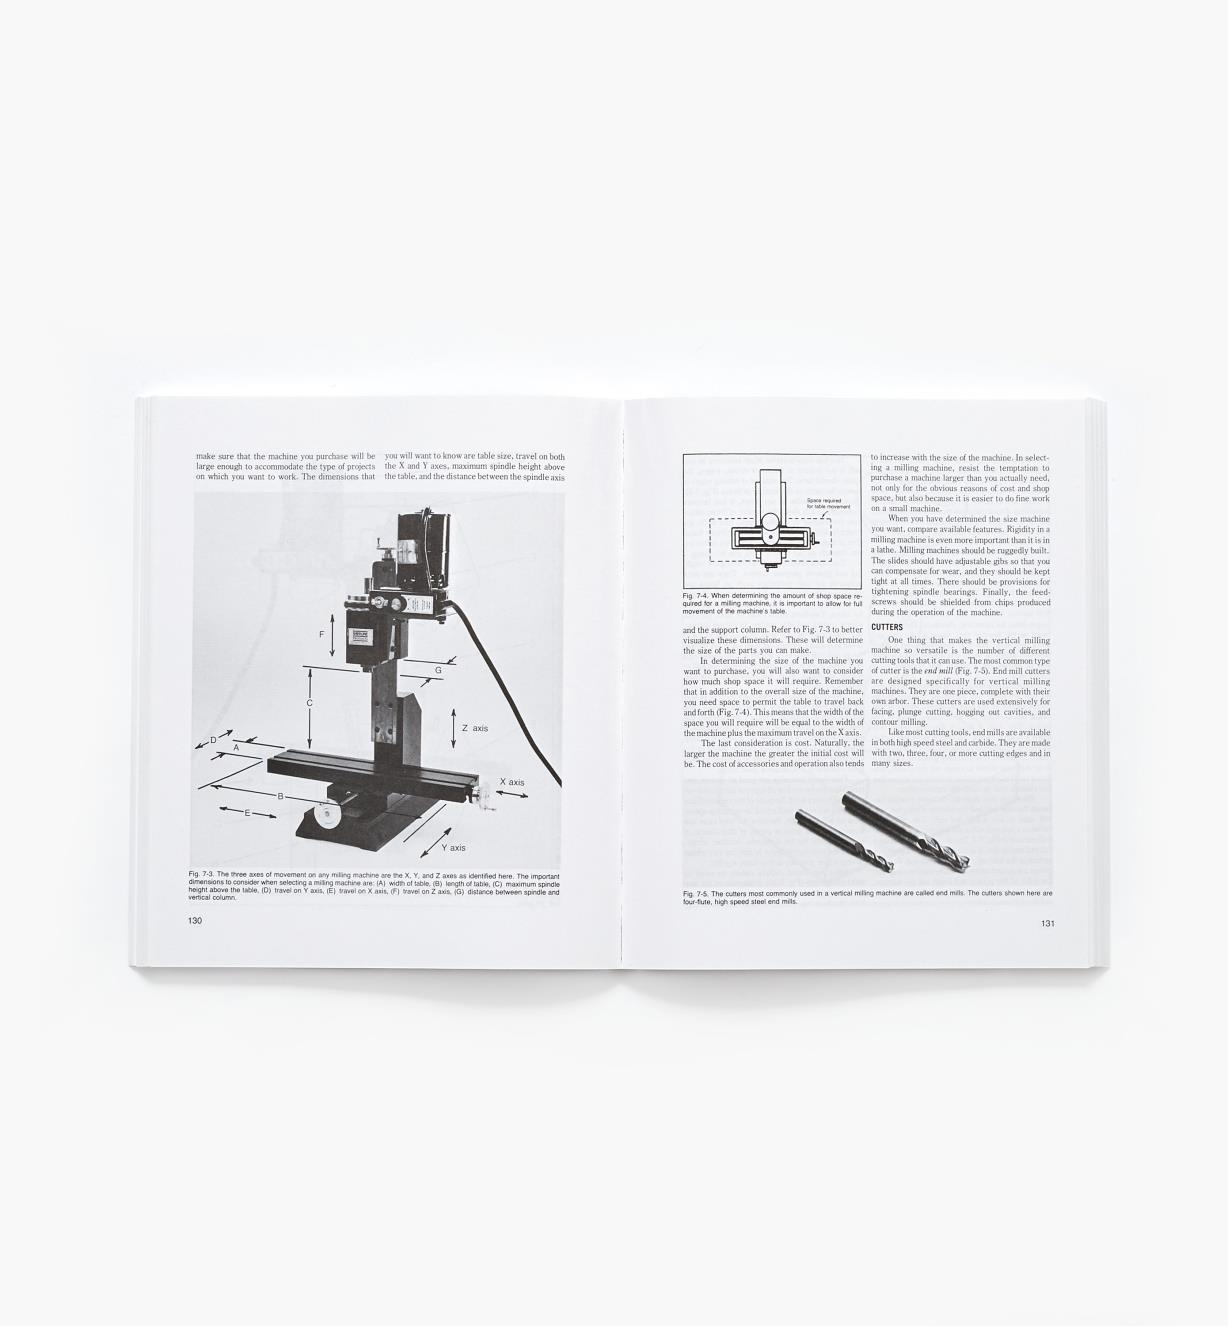 20L0217 - The Home Machinist's Handbook